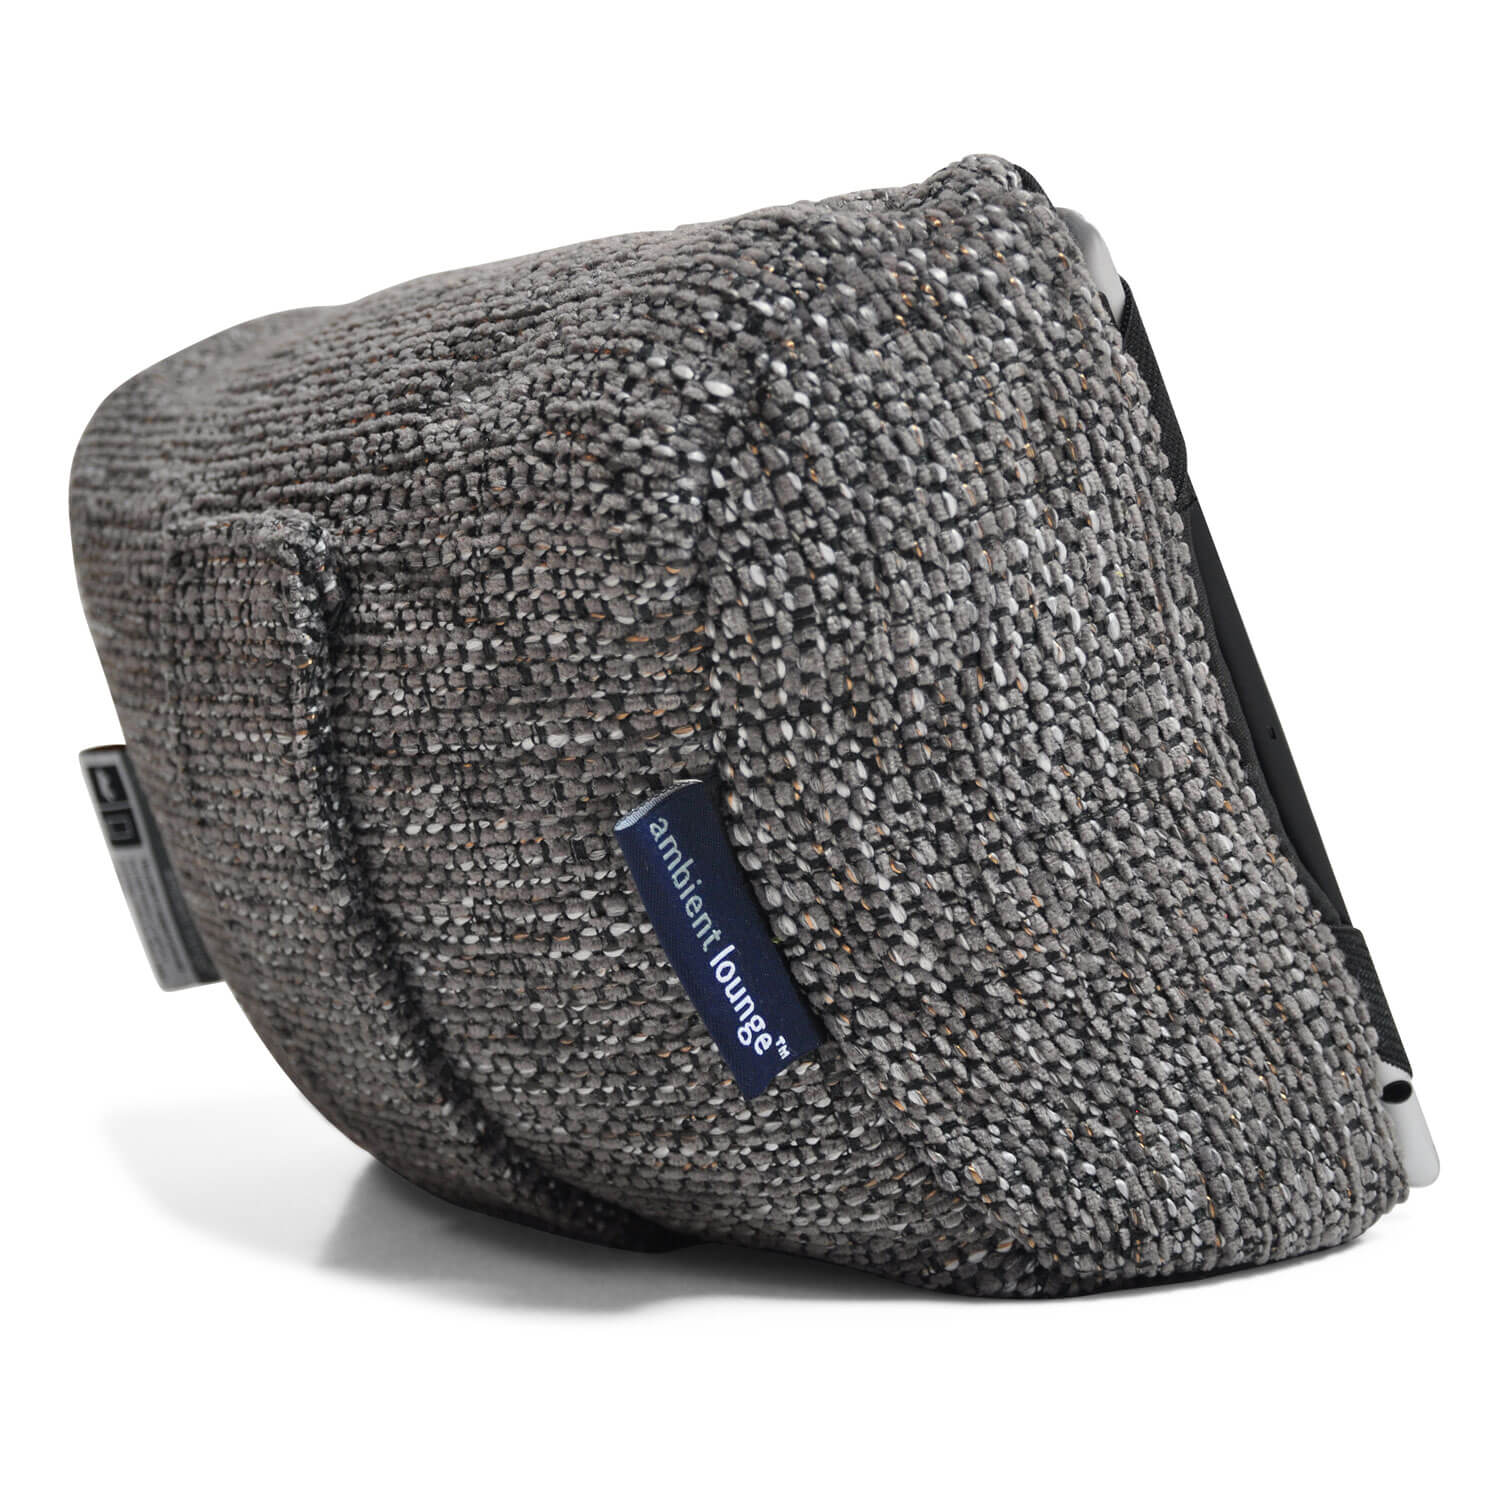 Tech Pillow Grey Ipad Rest And Head Cushion For Travel